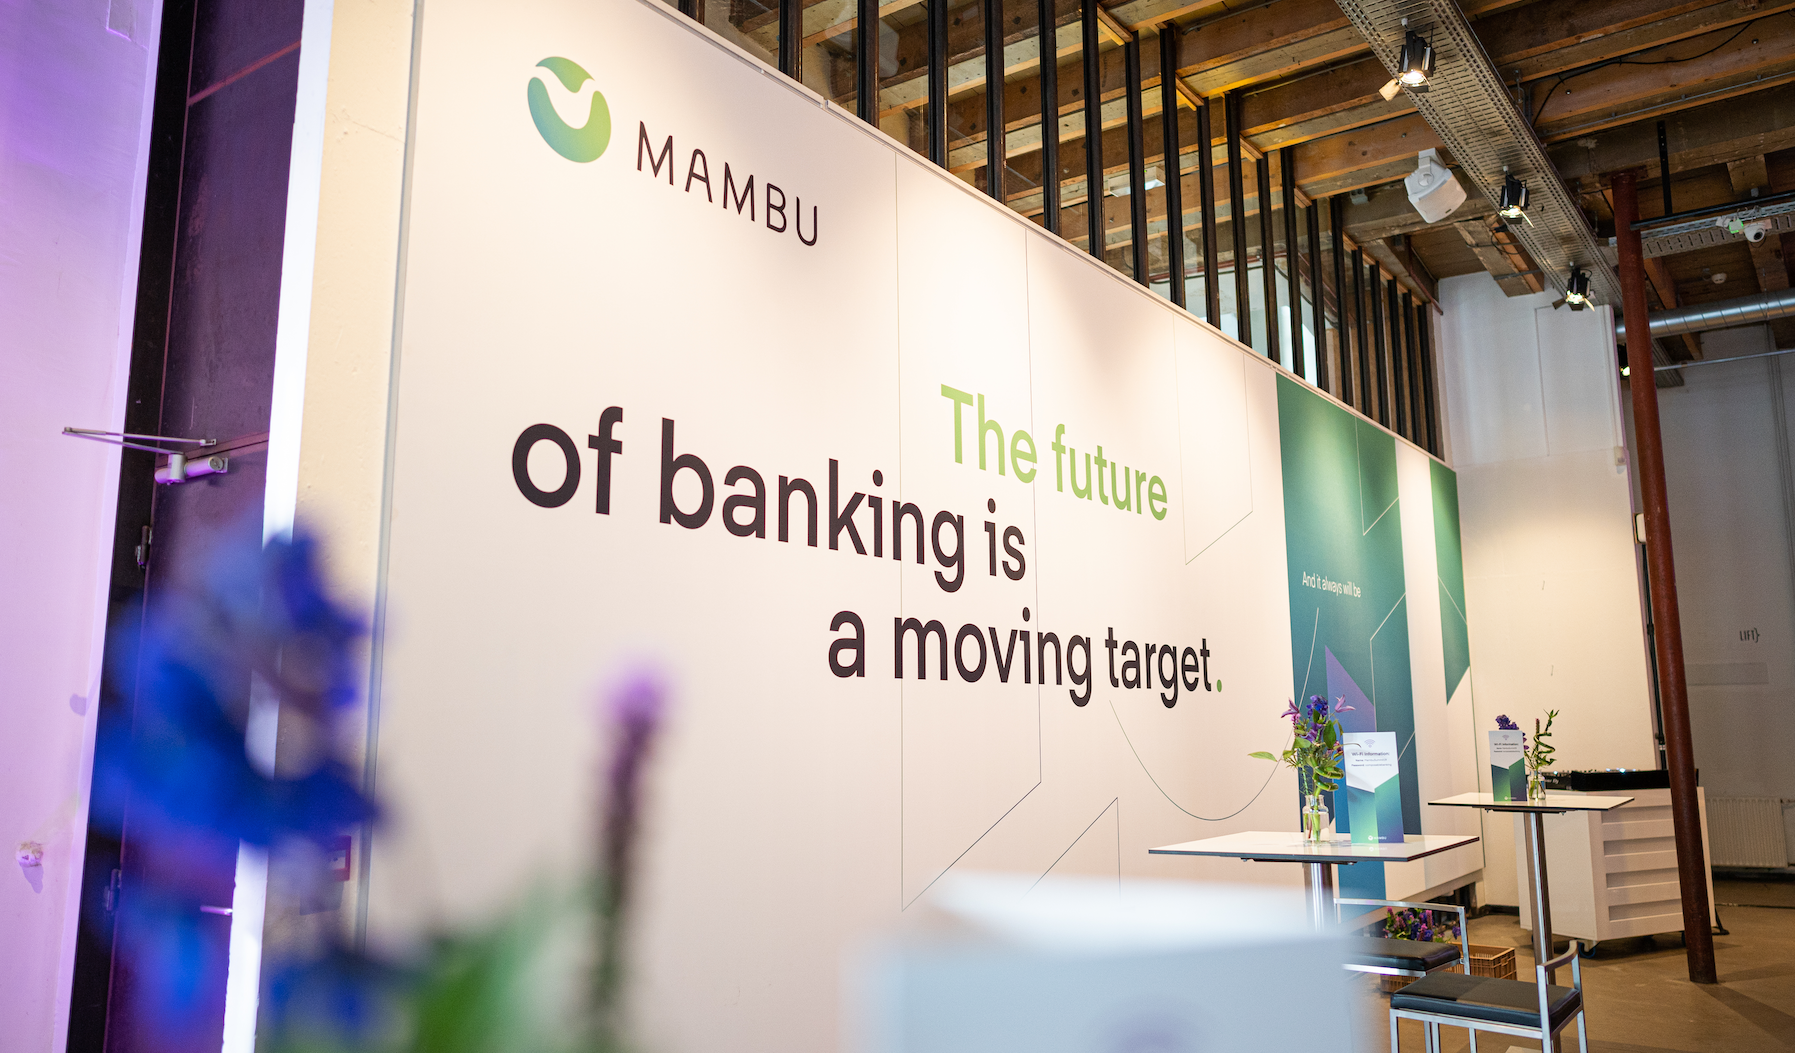 Mambu. The future of banking is a moving target.